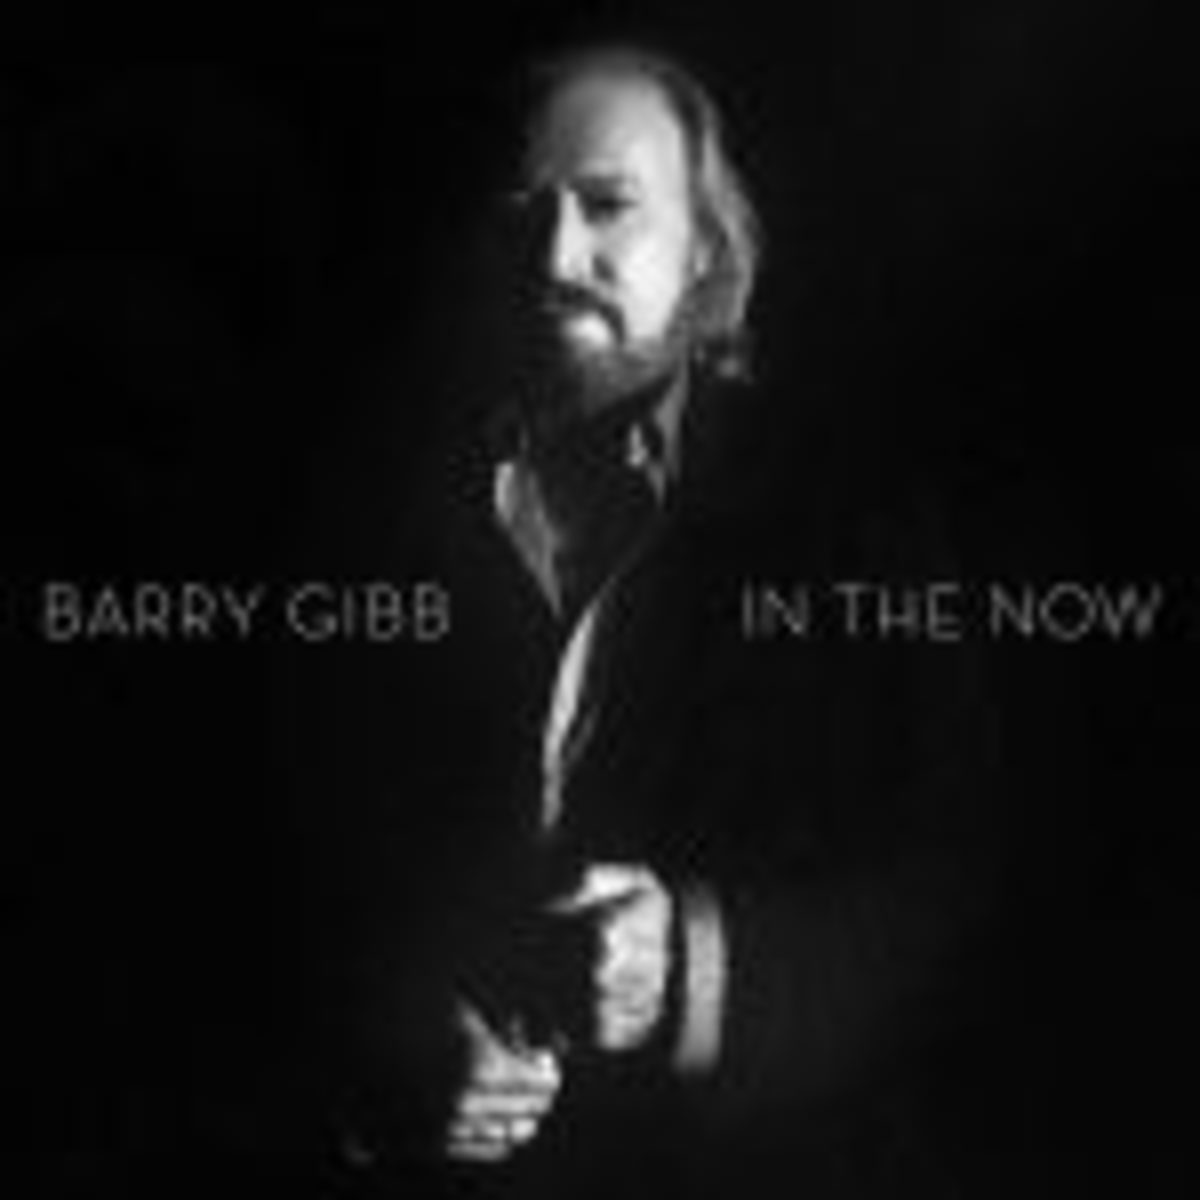 barry-gibb-in-the-now